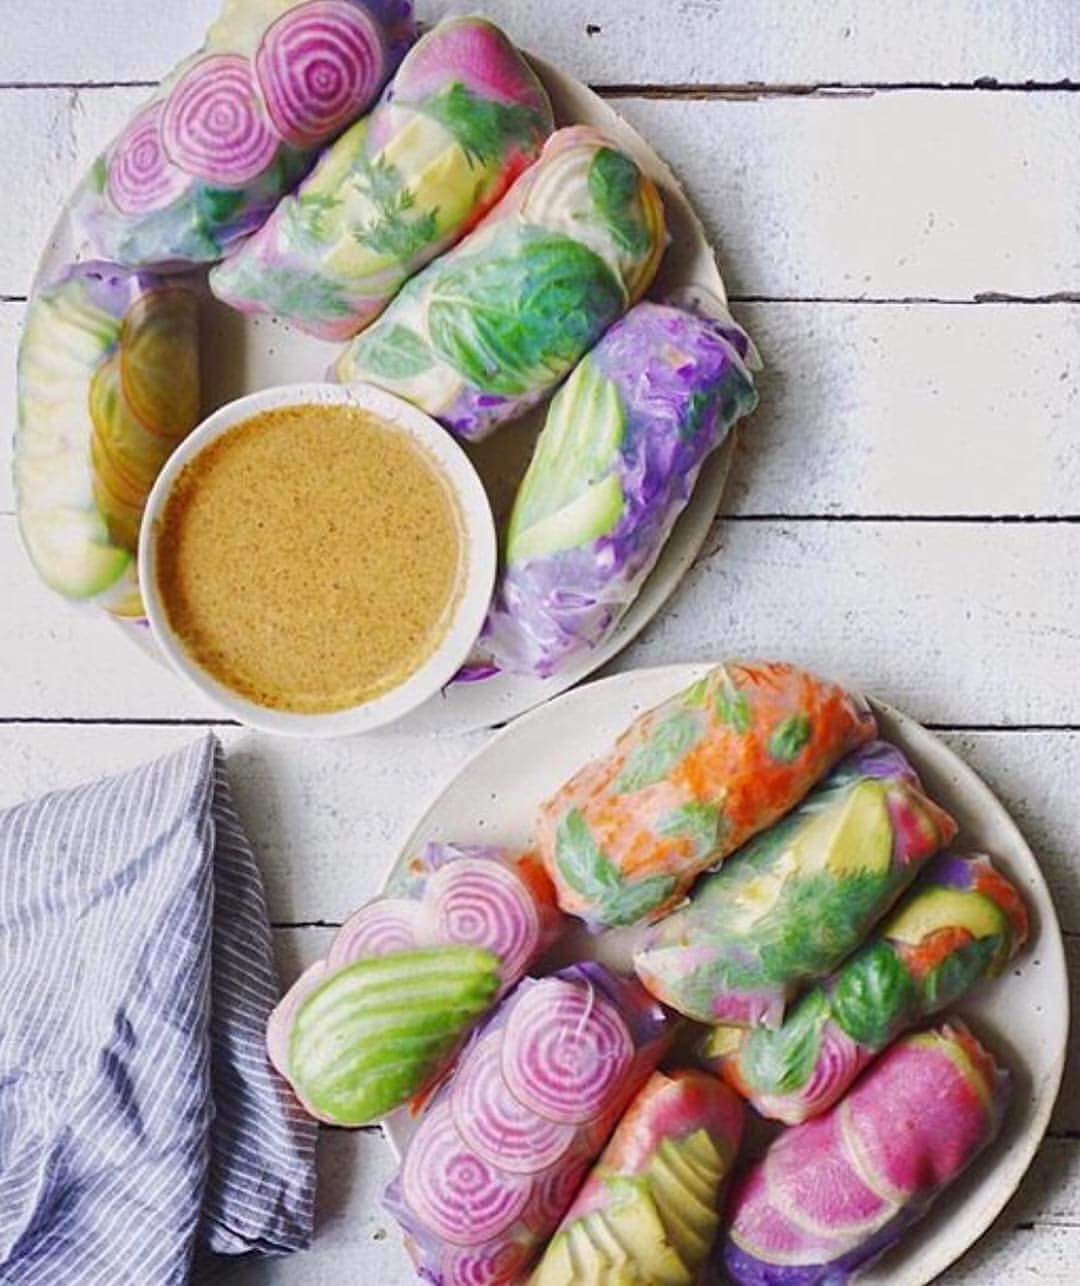 How to Make a Psychedelic Salad Rolls